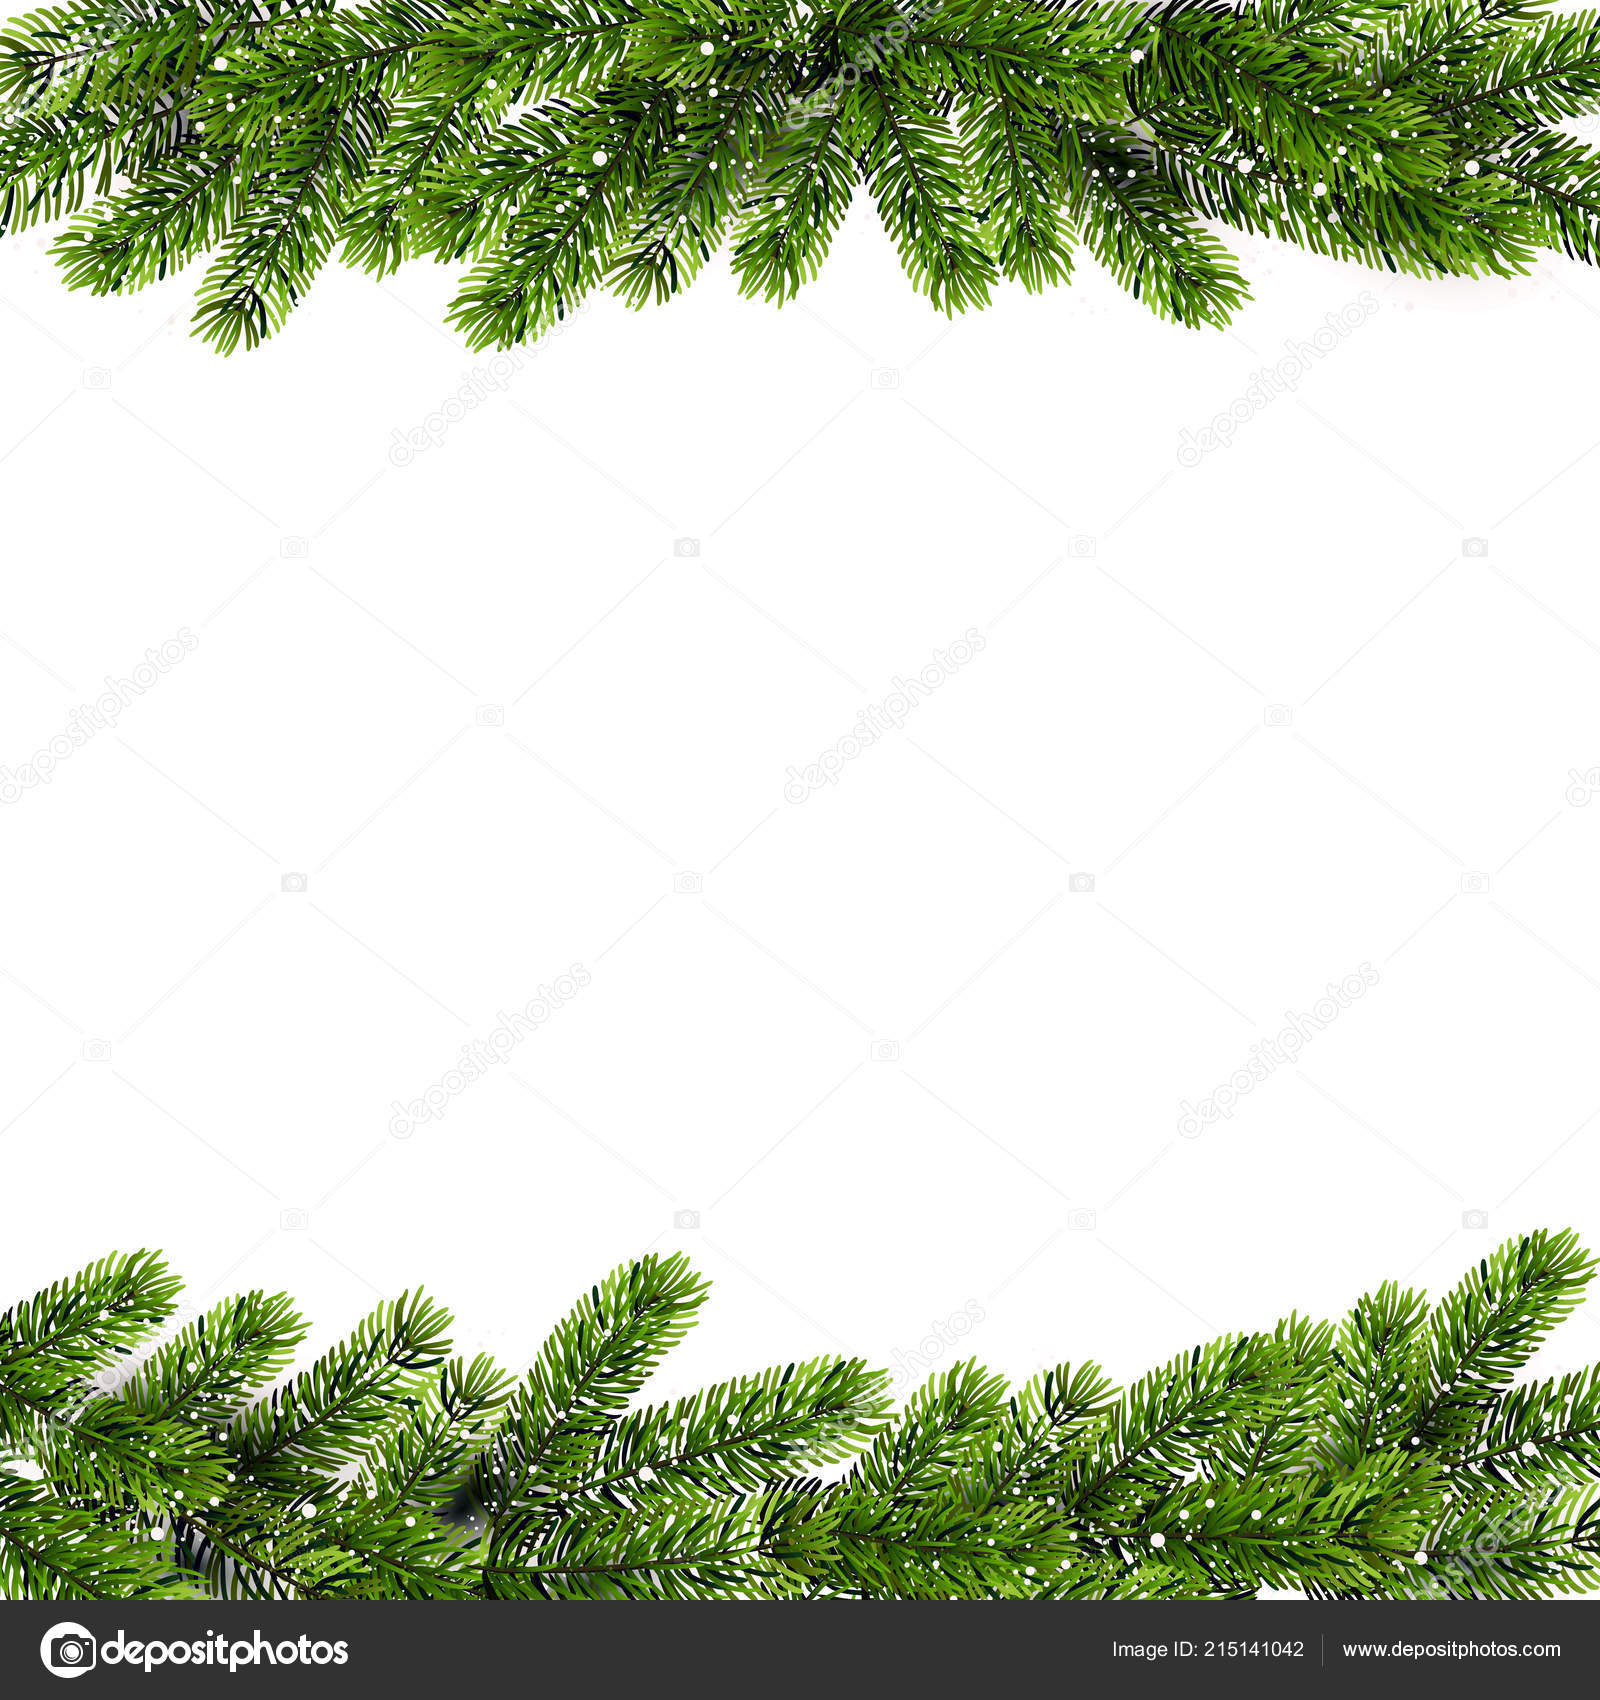 Christmas Branch Vector.Christmas Background With Green Pine Branches Vector